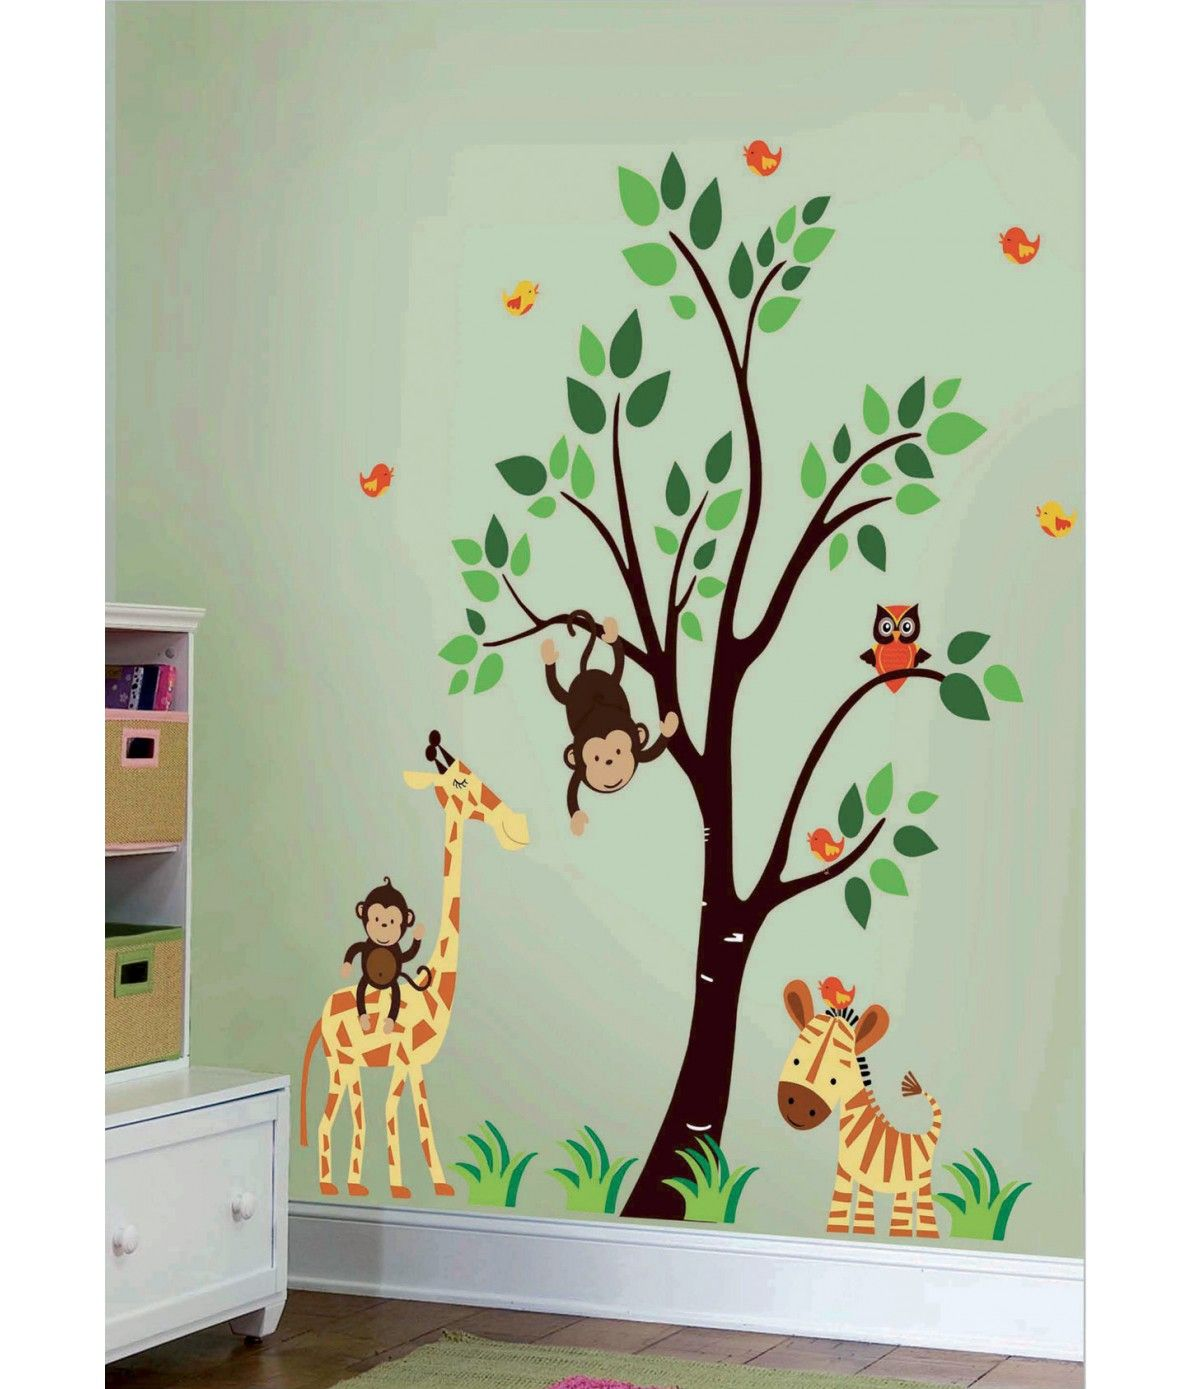 Artistic vinyl blik mural wall sticker jungle family wall decal artistic vinyl blik mural wall sticker jungle family wall decal for kids children and amipublicfo Image collections